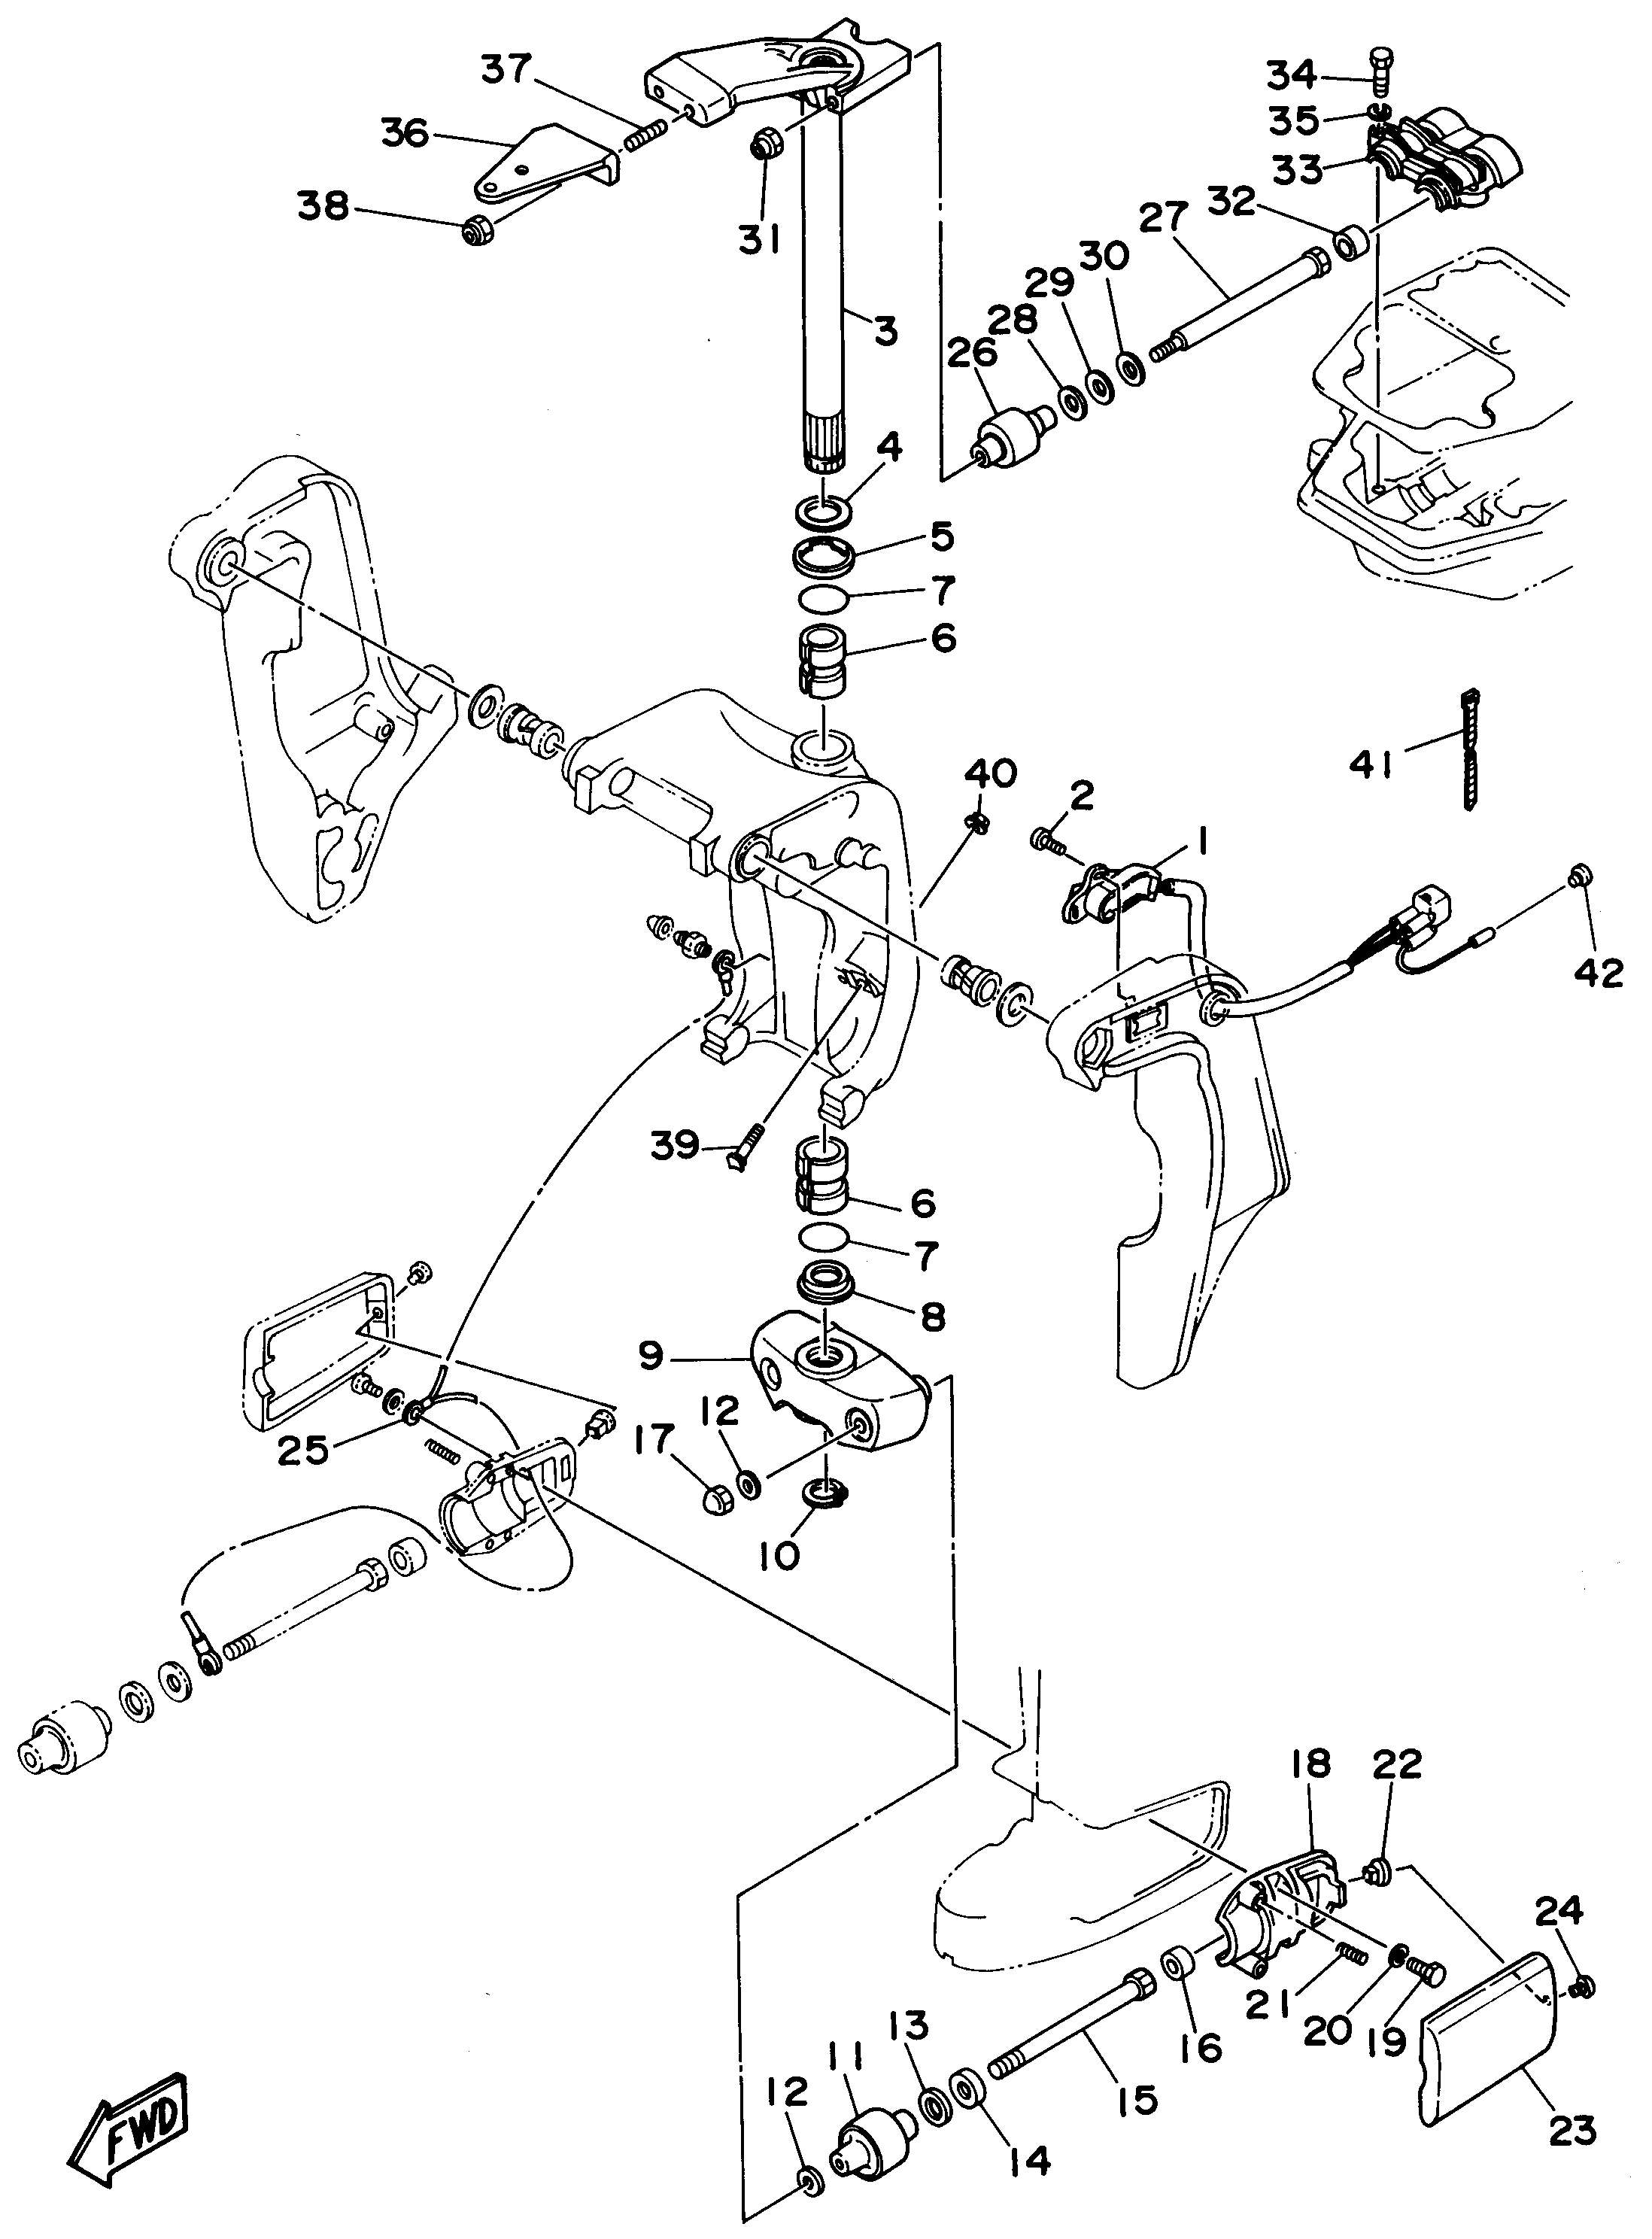 suzuki outboard motor parts diagram - impremedia.net 2008 yamaha 25 outboard wire diagram #7